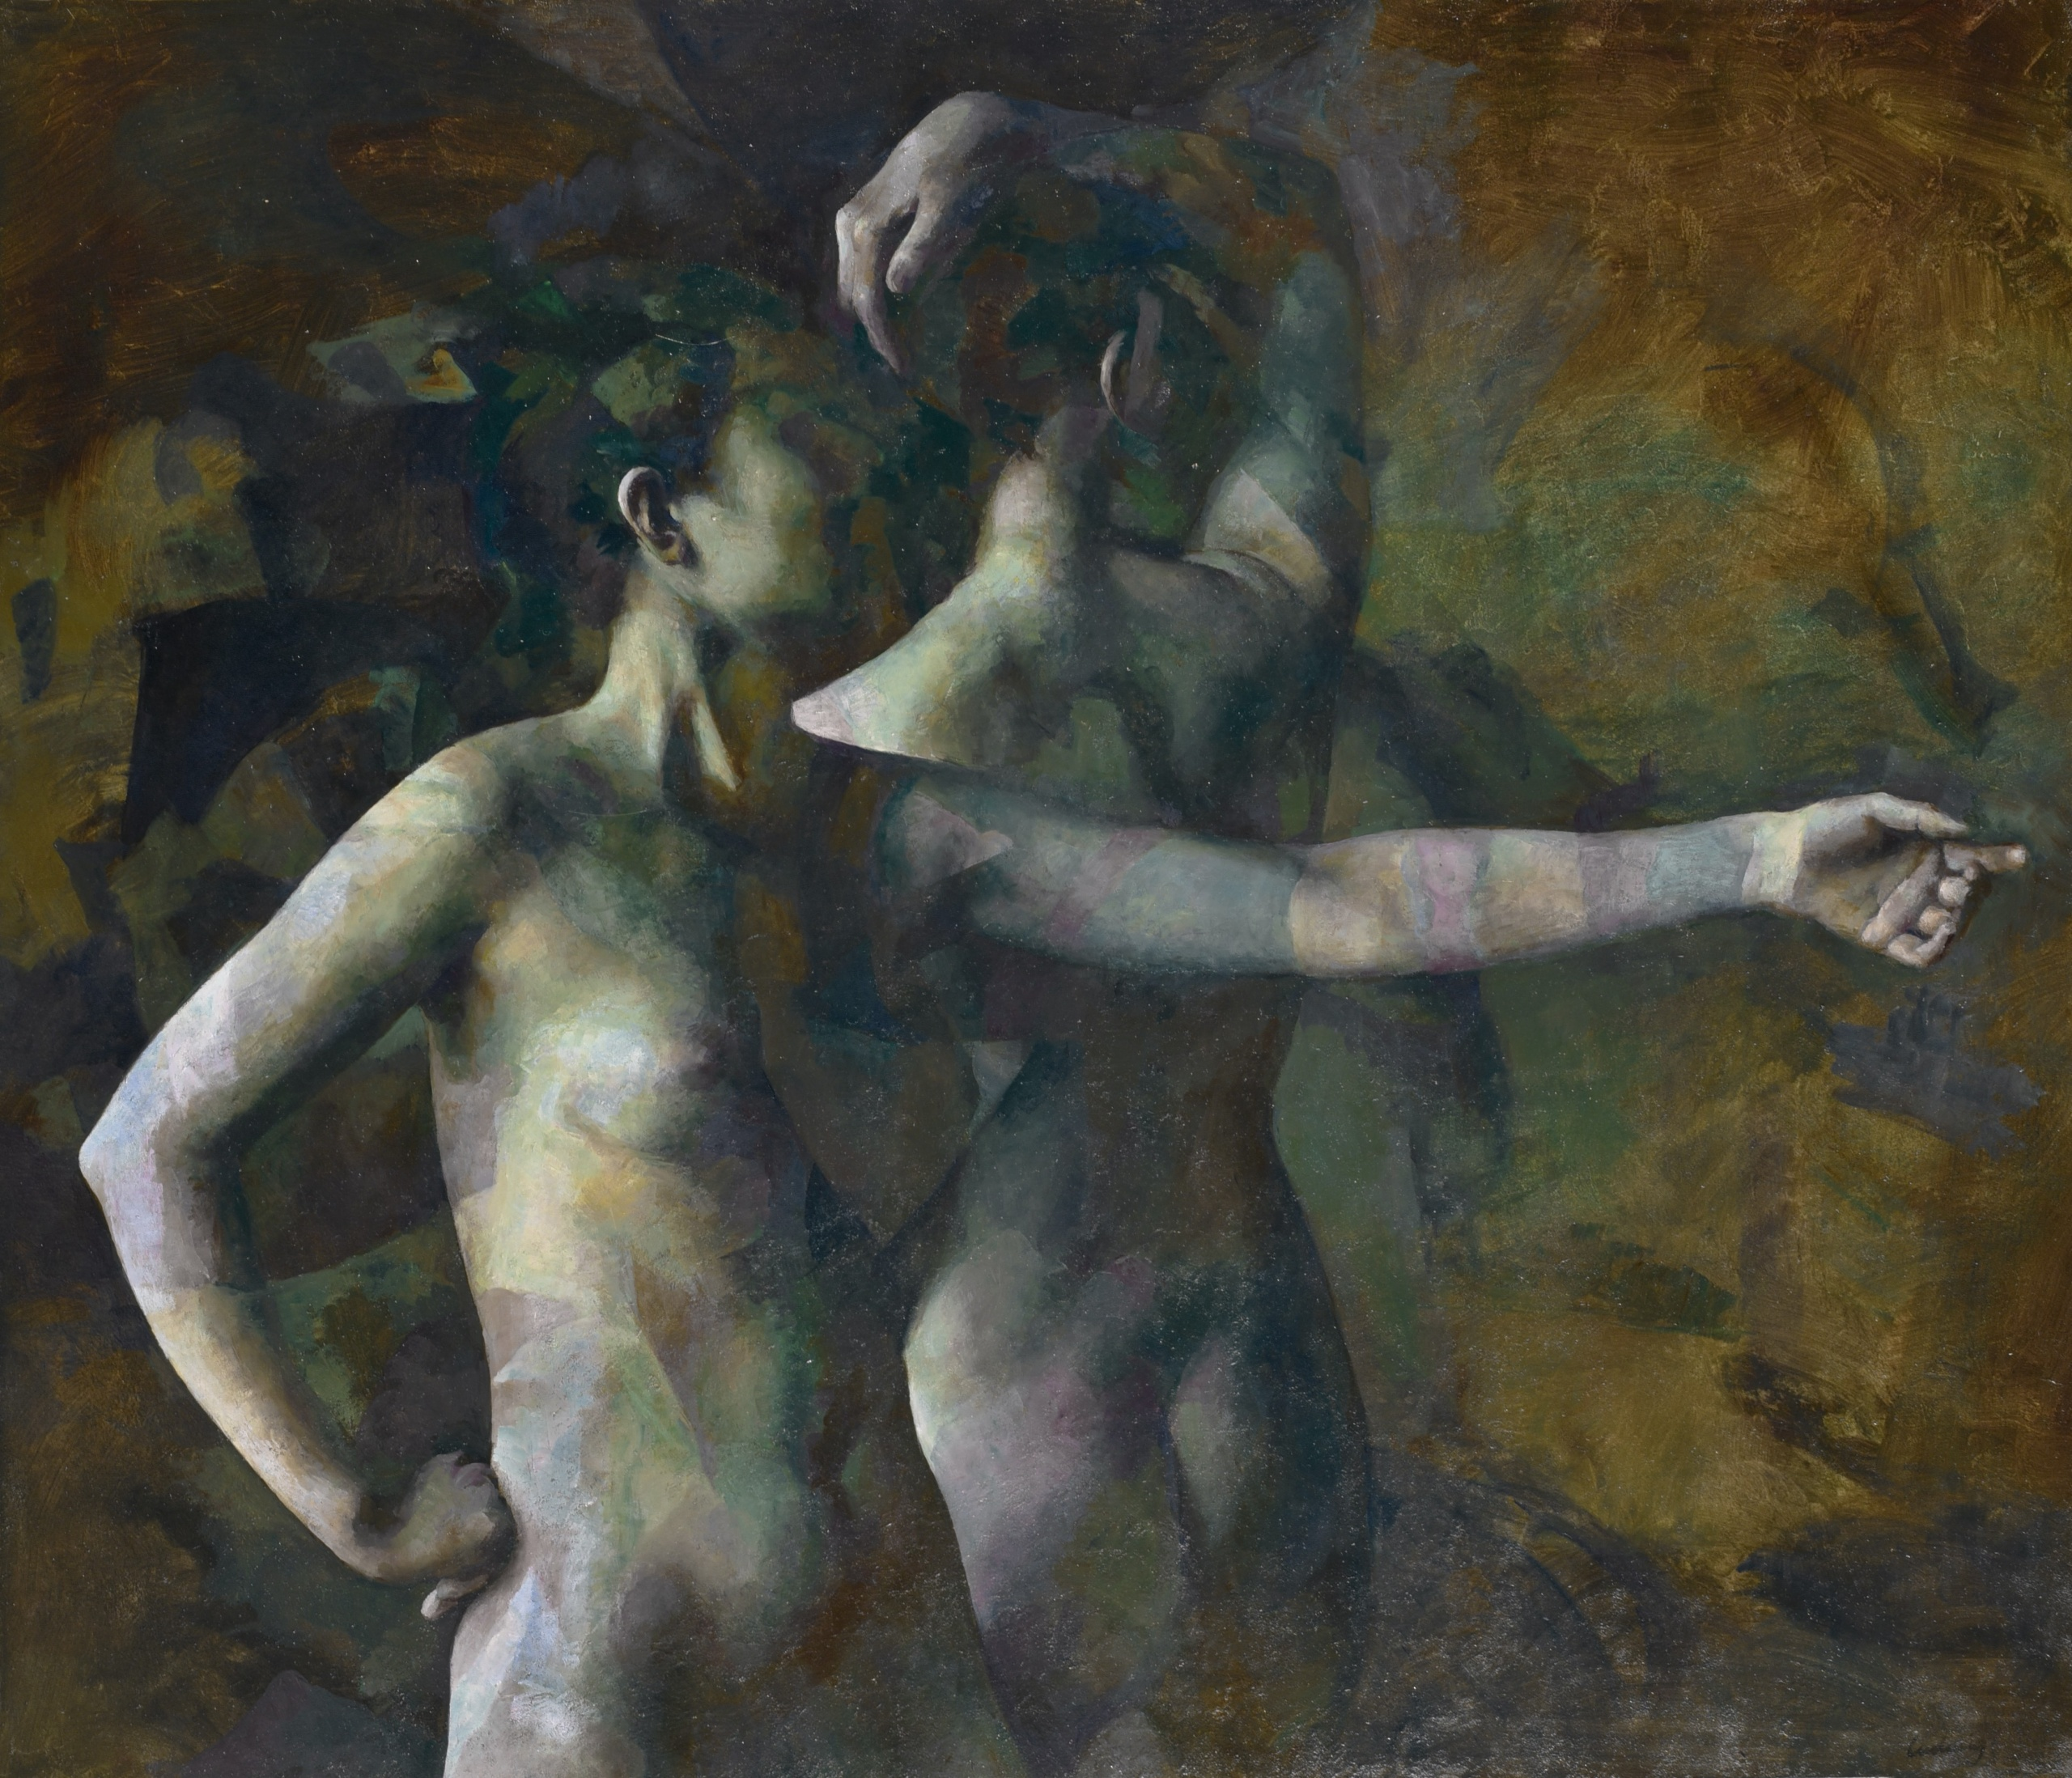 Two Women, Oil on board, 37.5 x 44 inches